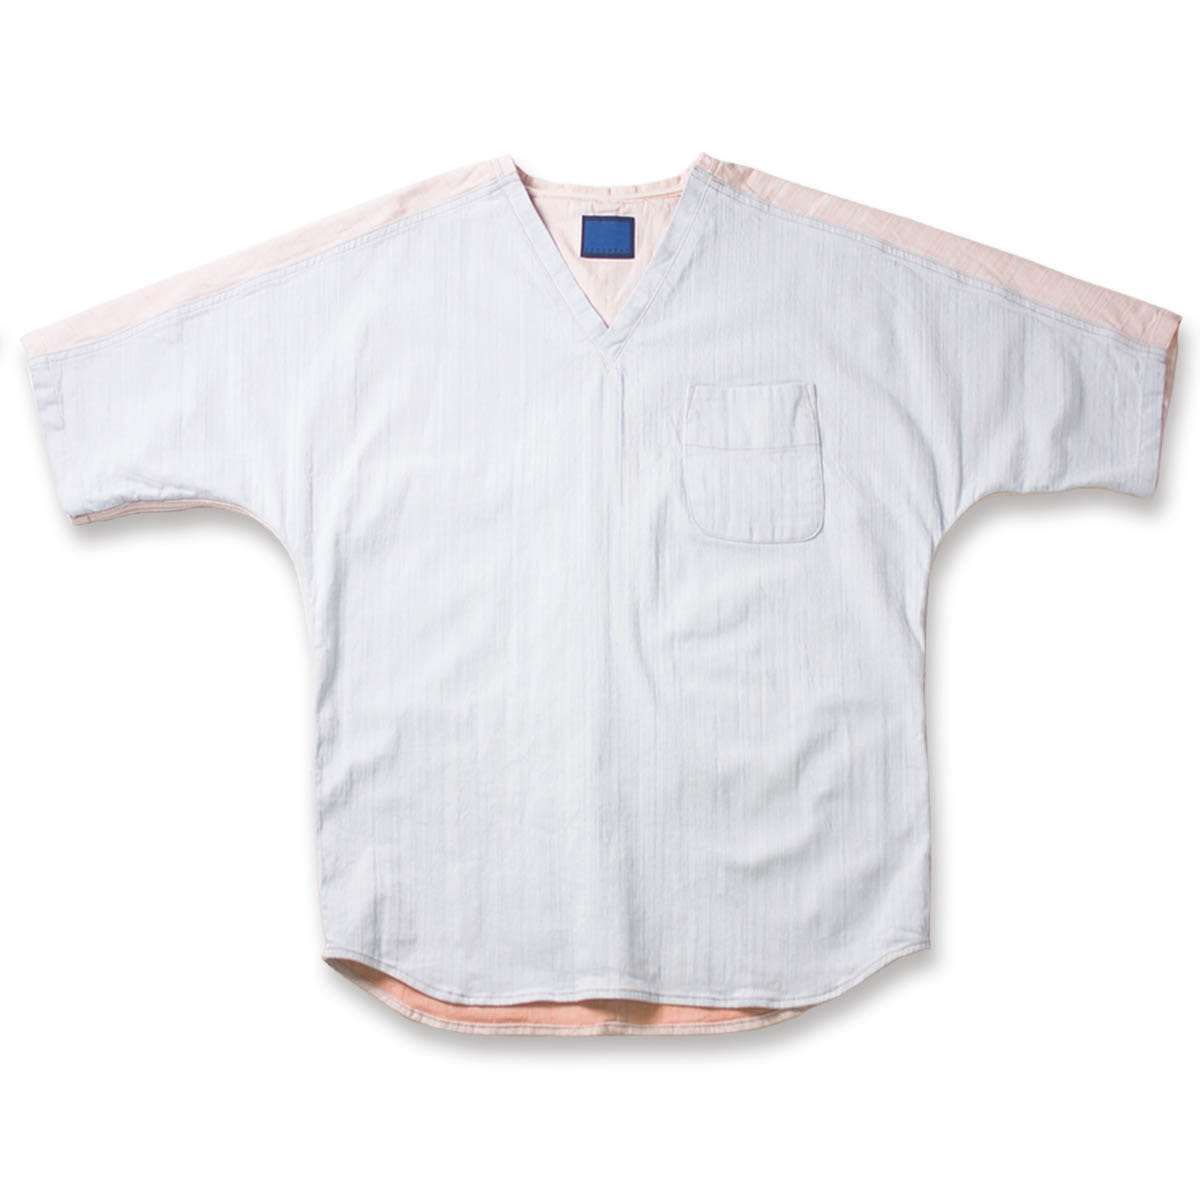 [DOCUMENT] M121 DAMIAN SHIRT 'LIGHT BLUE'